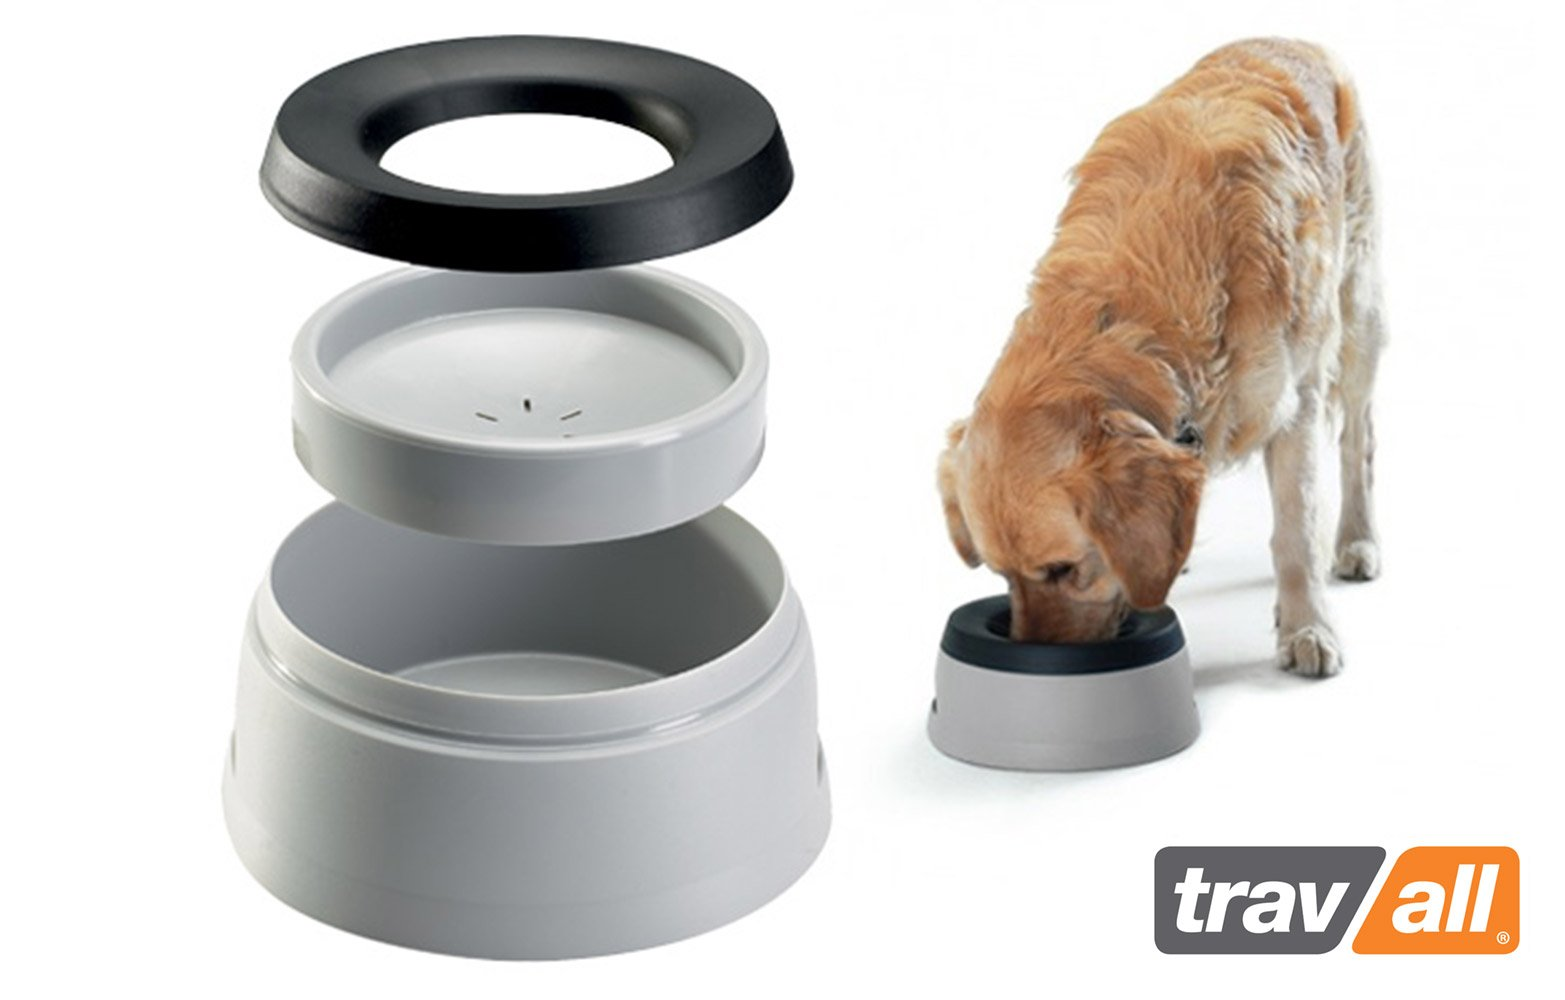 pet travel bowl road refresher (large)